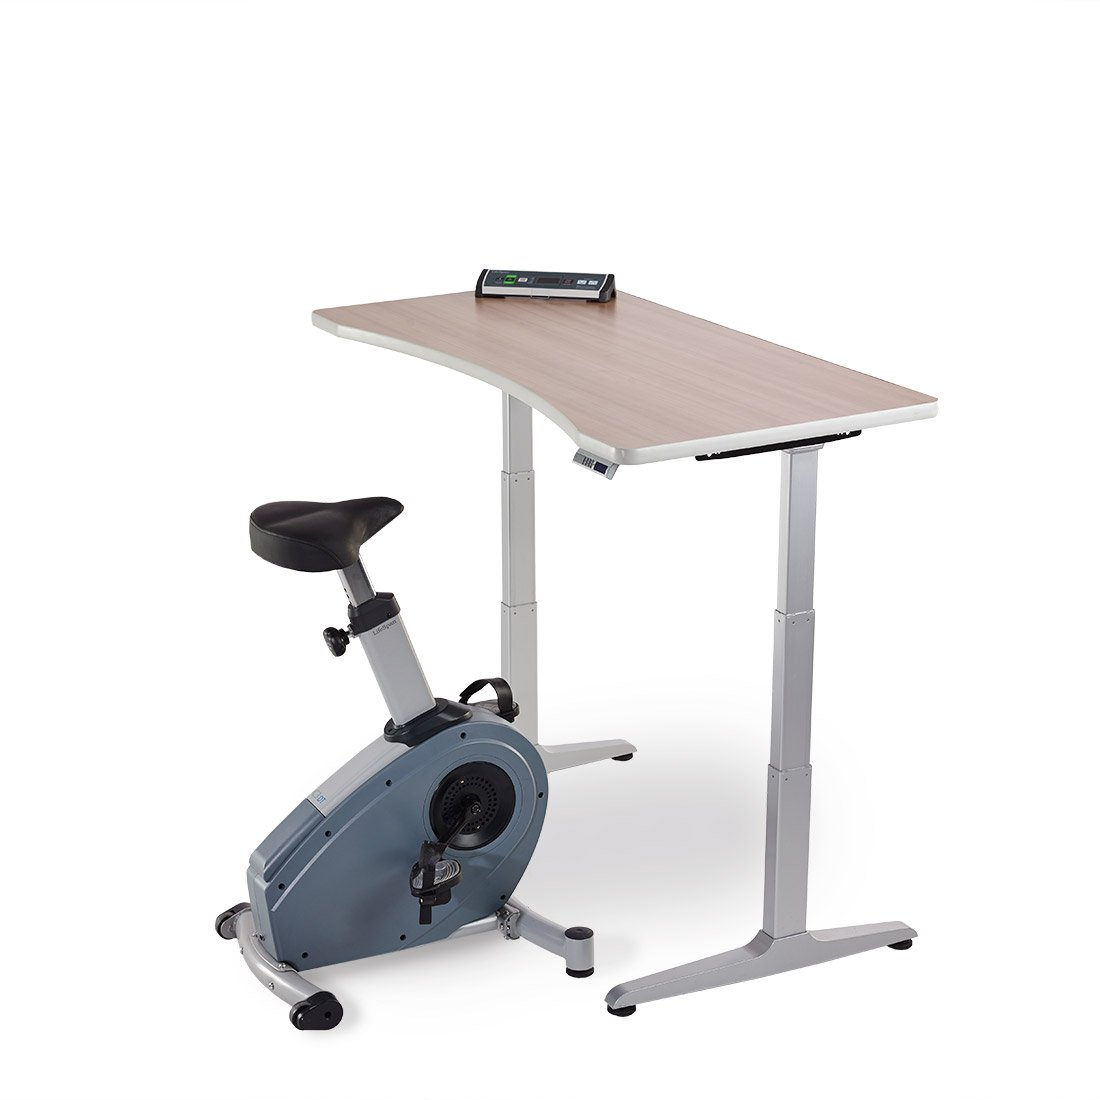 Amazoncom LifeSpan C3DT3 Under Desk Bike Exercise Bikes